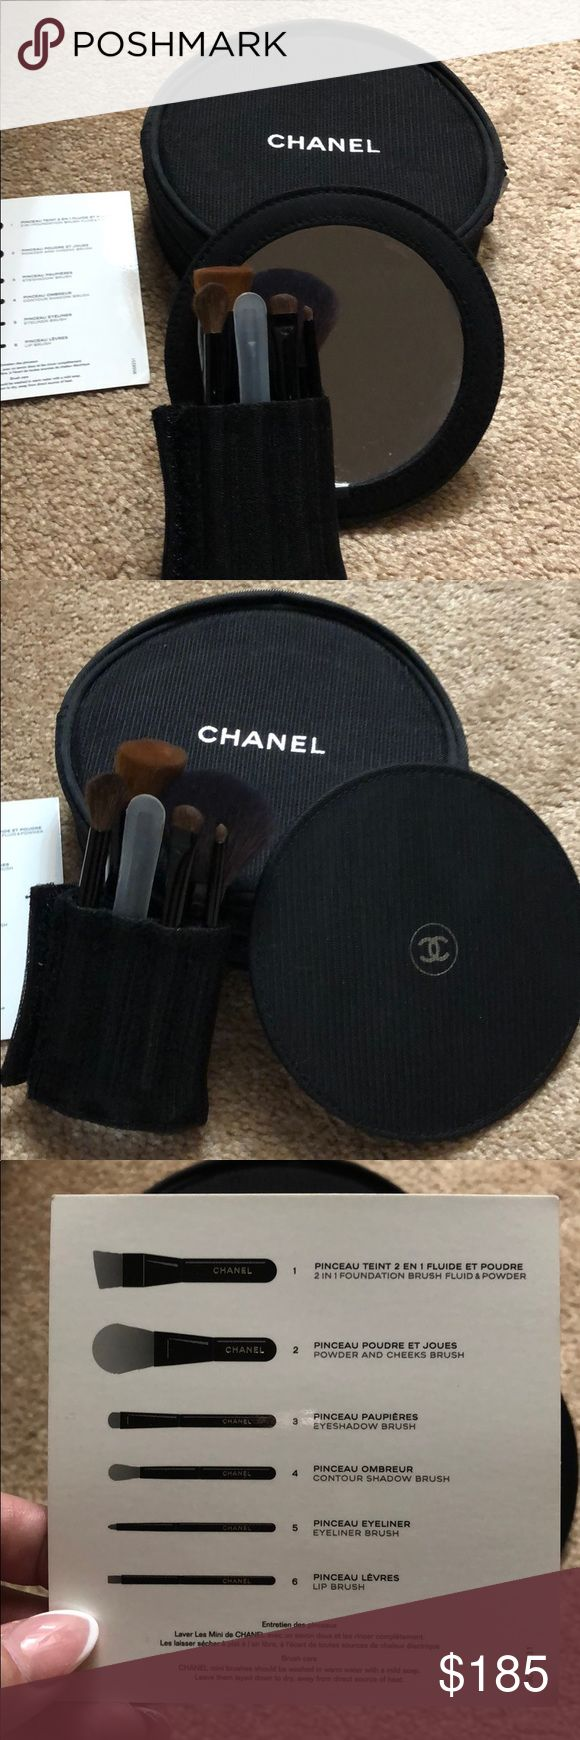 Chanel travel makeup brush set w/mirror and case 100